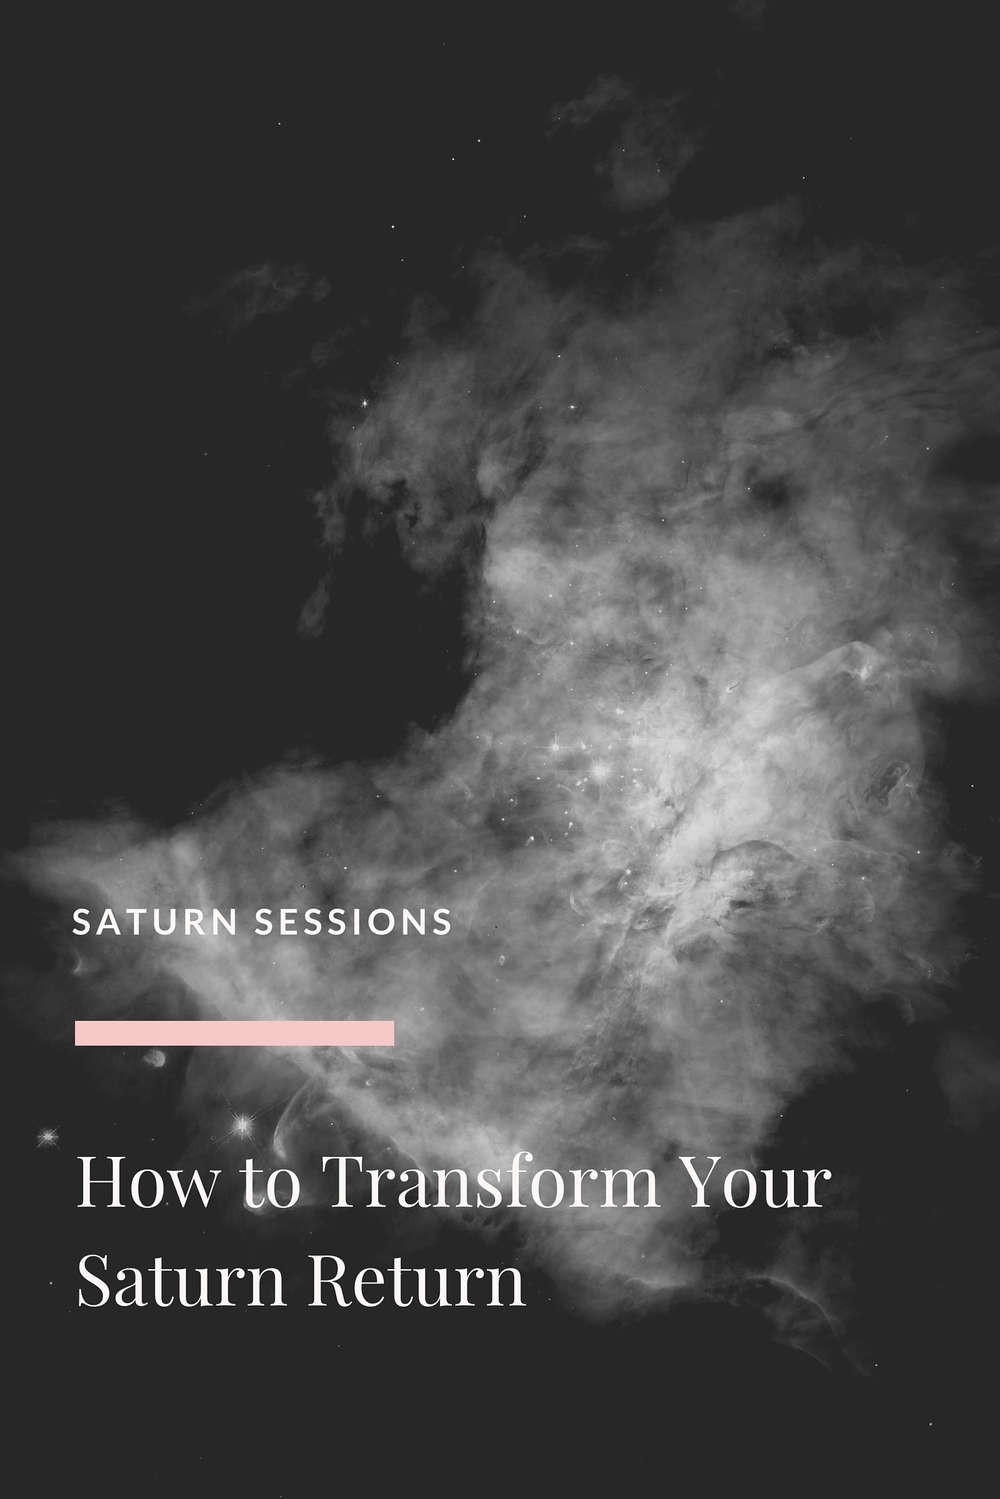 Everything you need to know to prepare for your Saturn Return